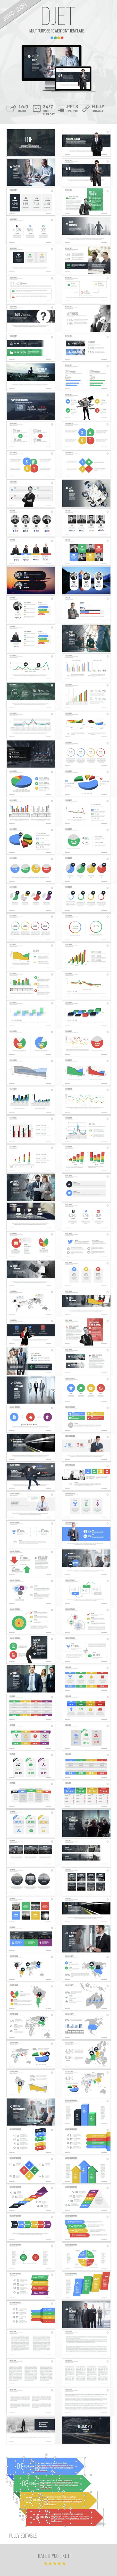 Djet Powerpoint Presentation Template (PowerPoint Templates)